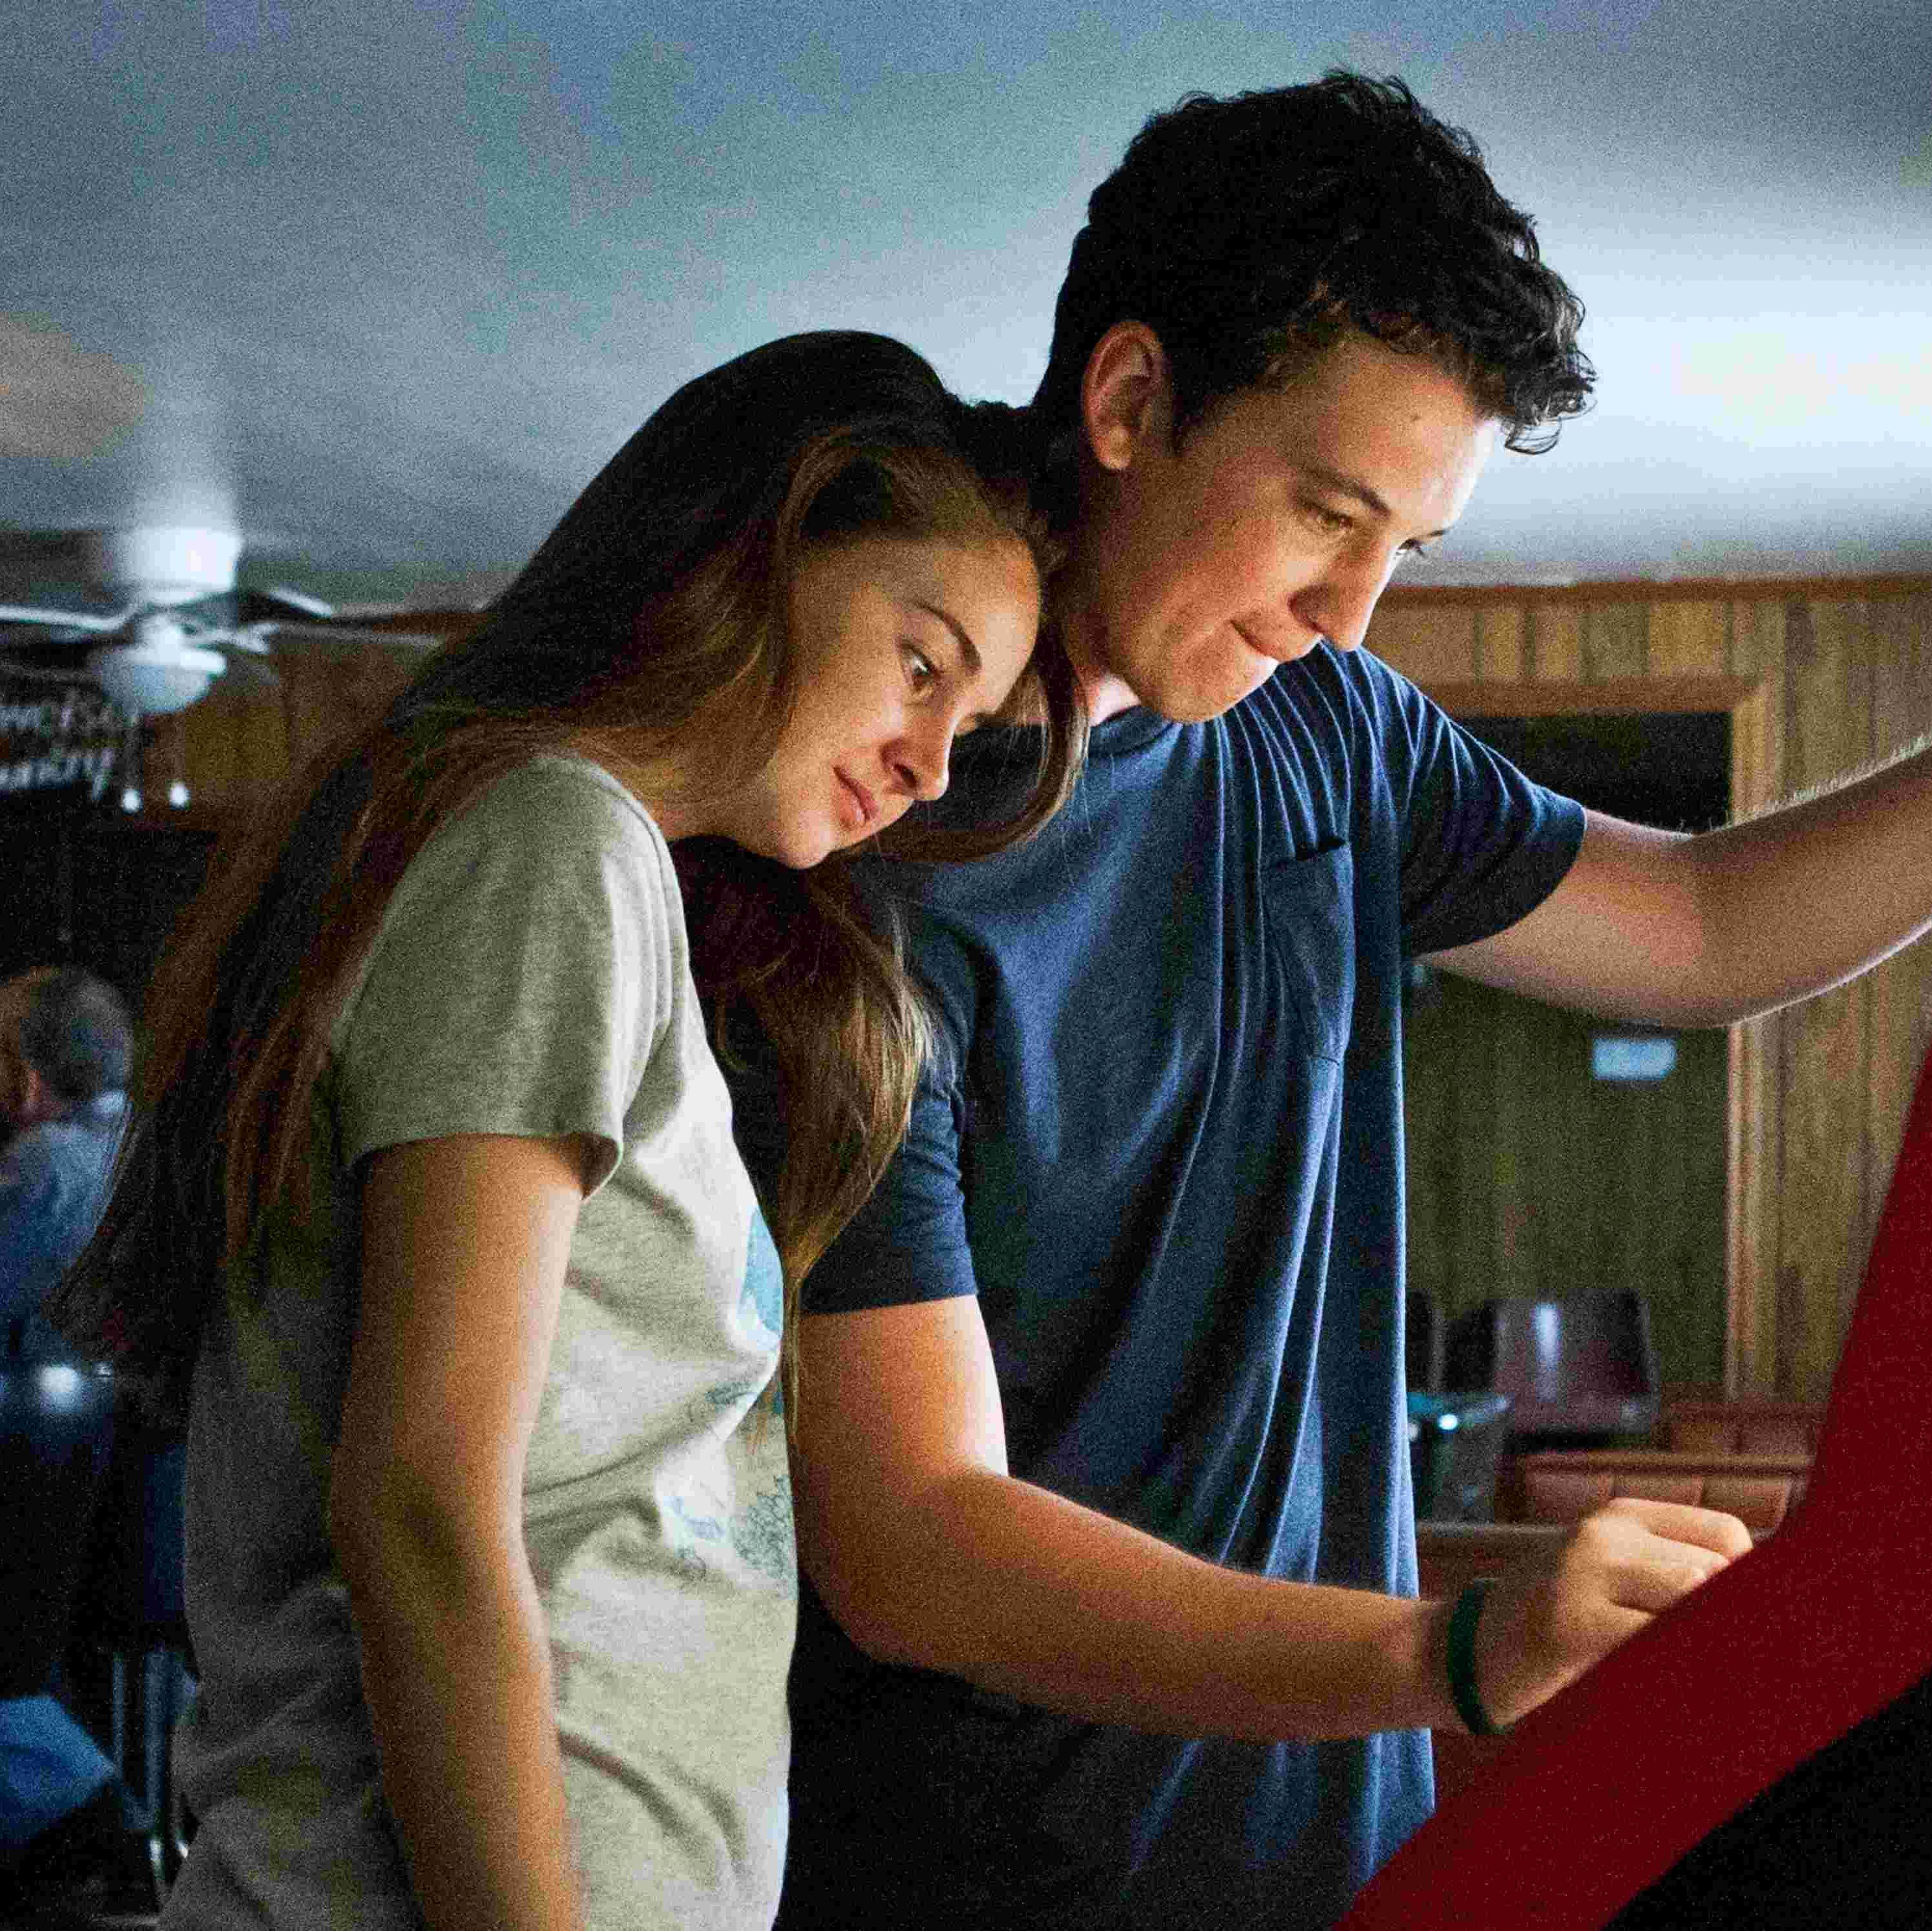 The Spectacular Now Two polar opposites—a hard-partying high school senior (Miles Teller) and an unpopular misfit (Shailene Woodley)—find unexpected romance in this teen drama.